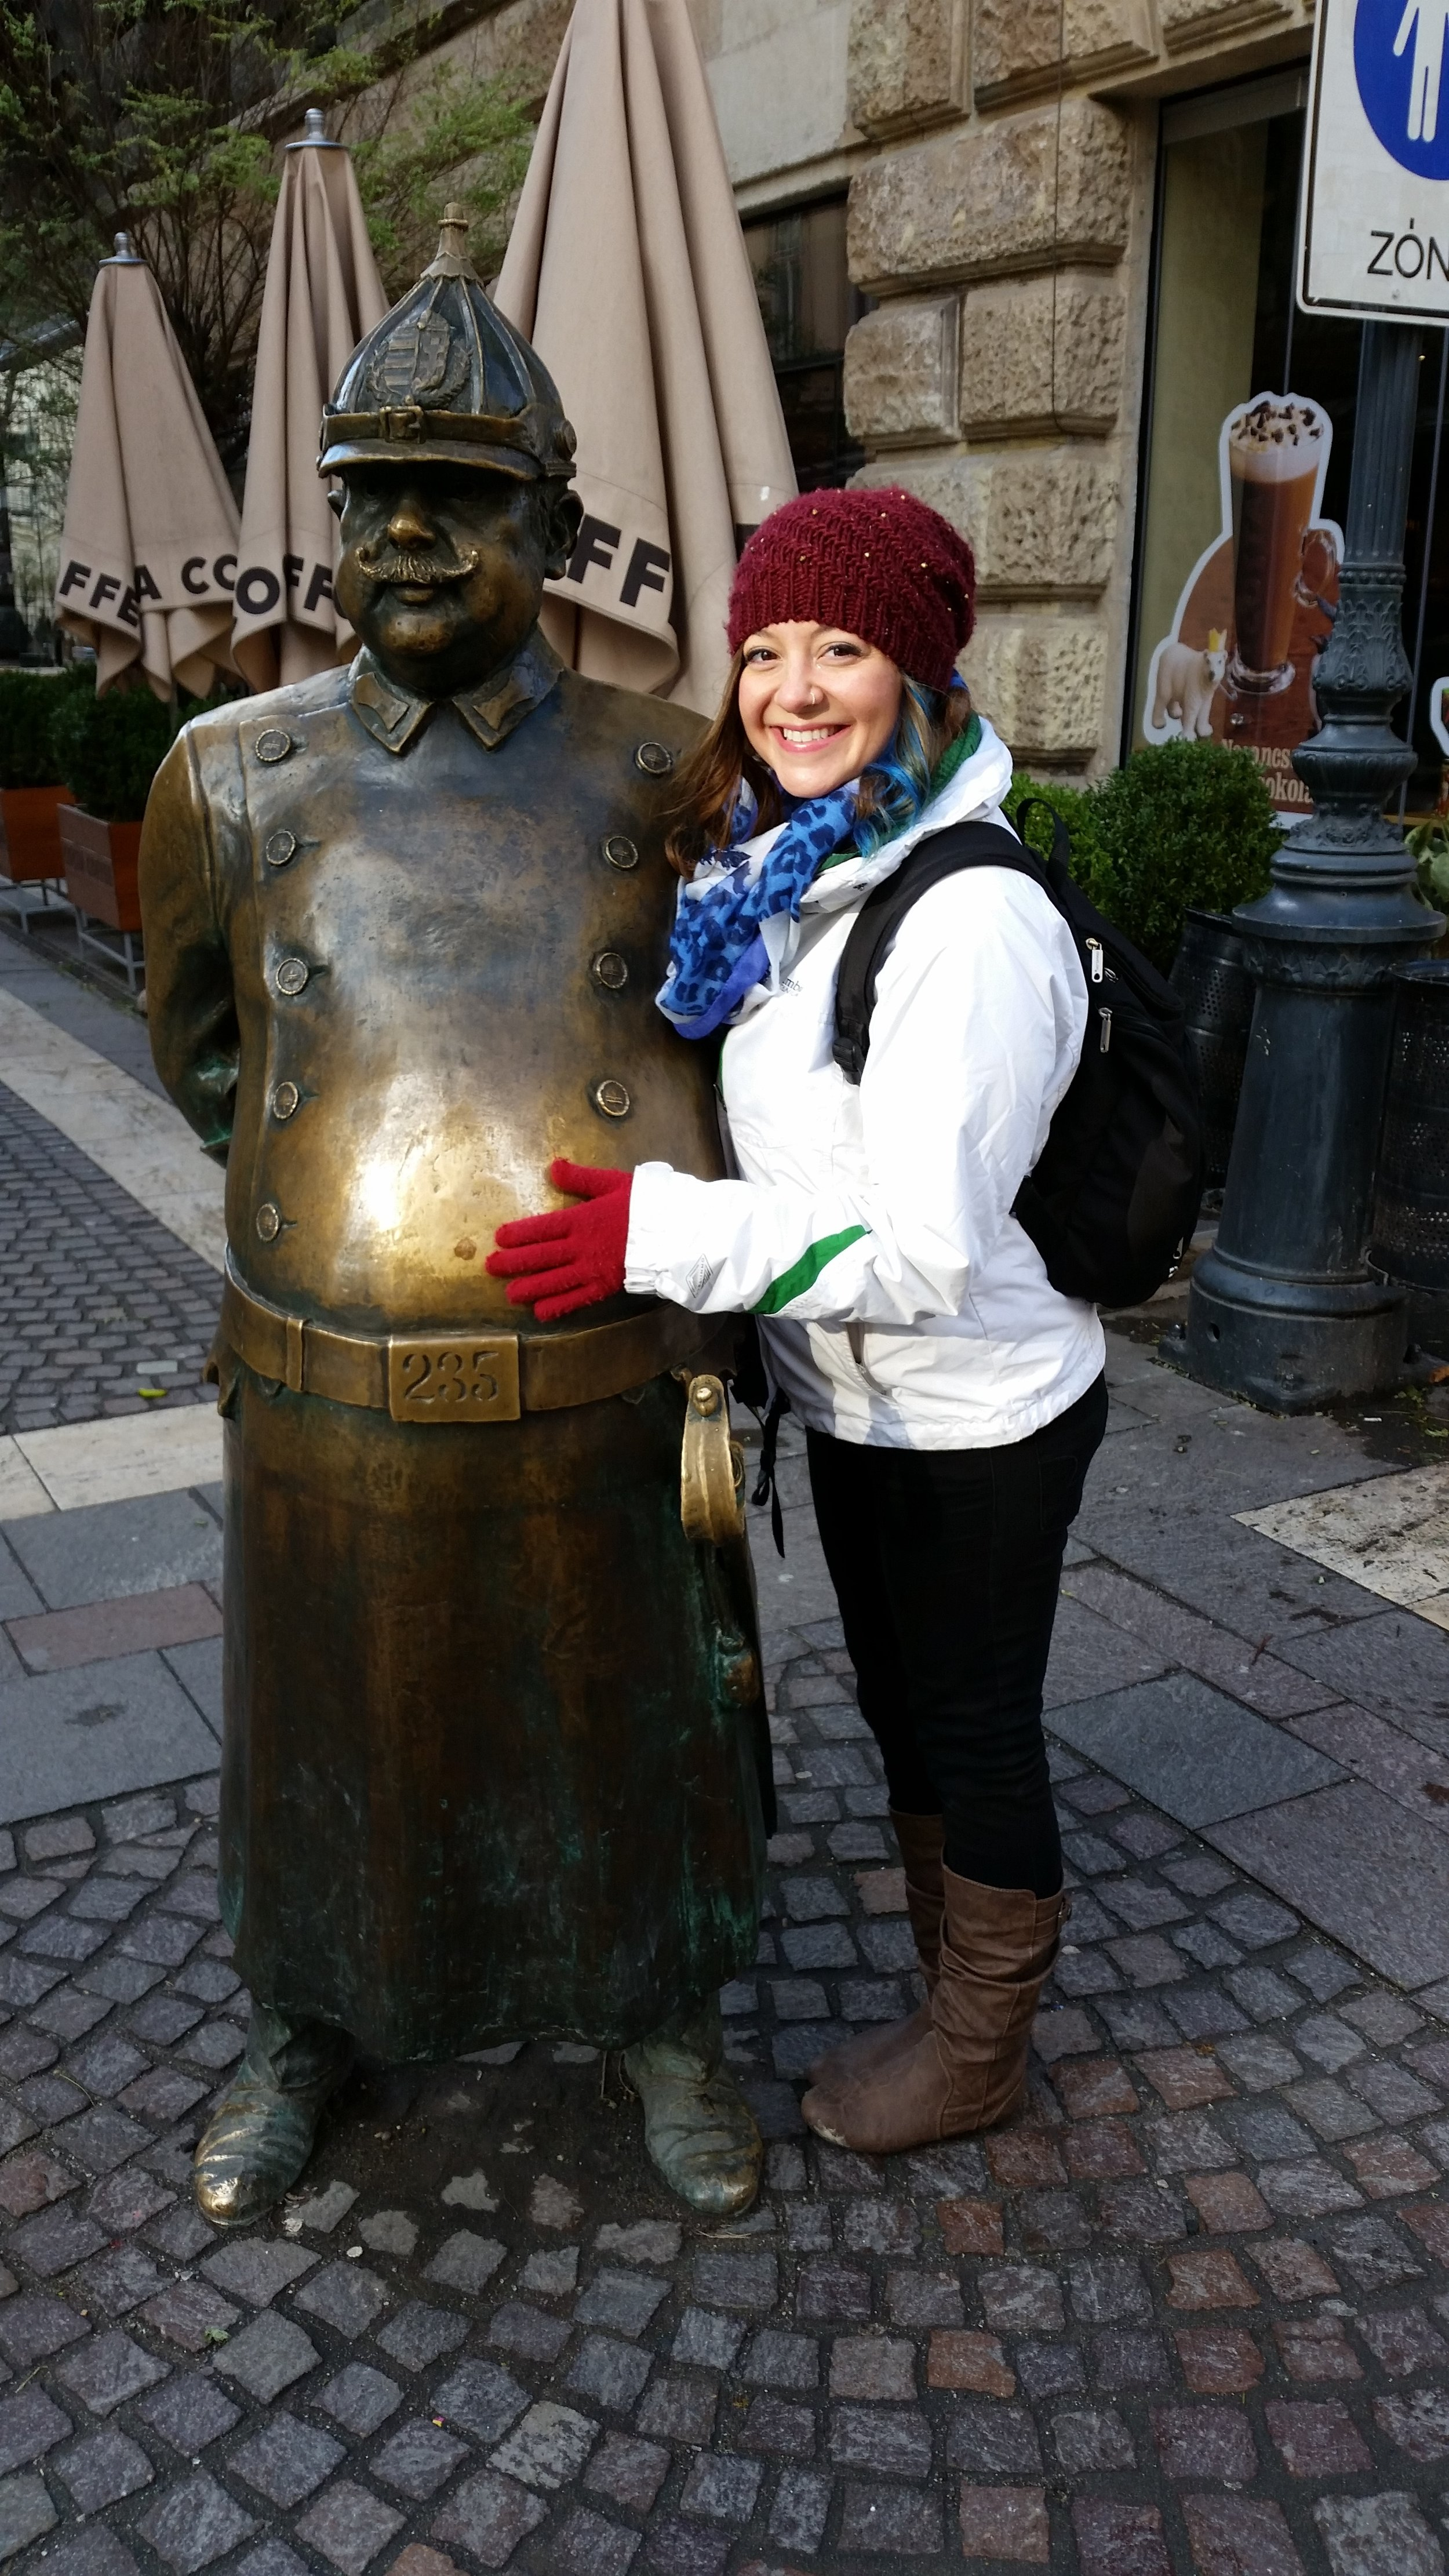 Rubbing the fat lucky tummy of the bronze policeman